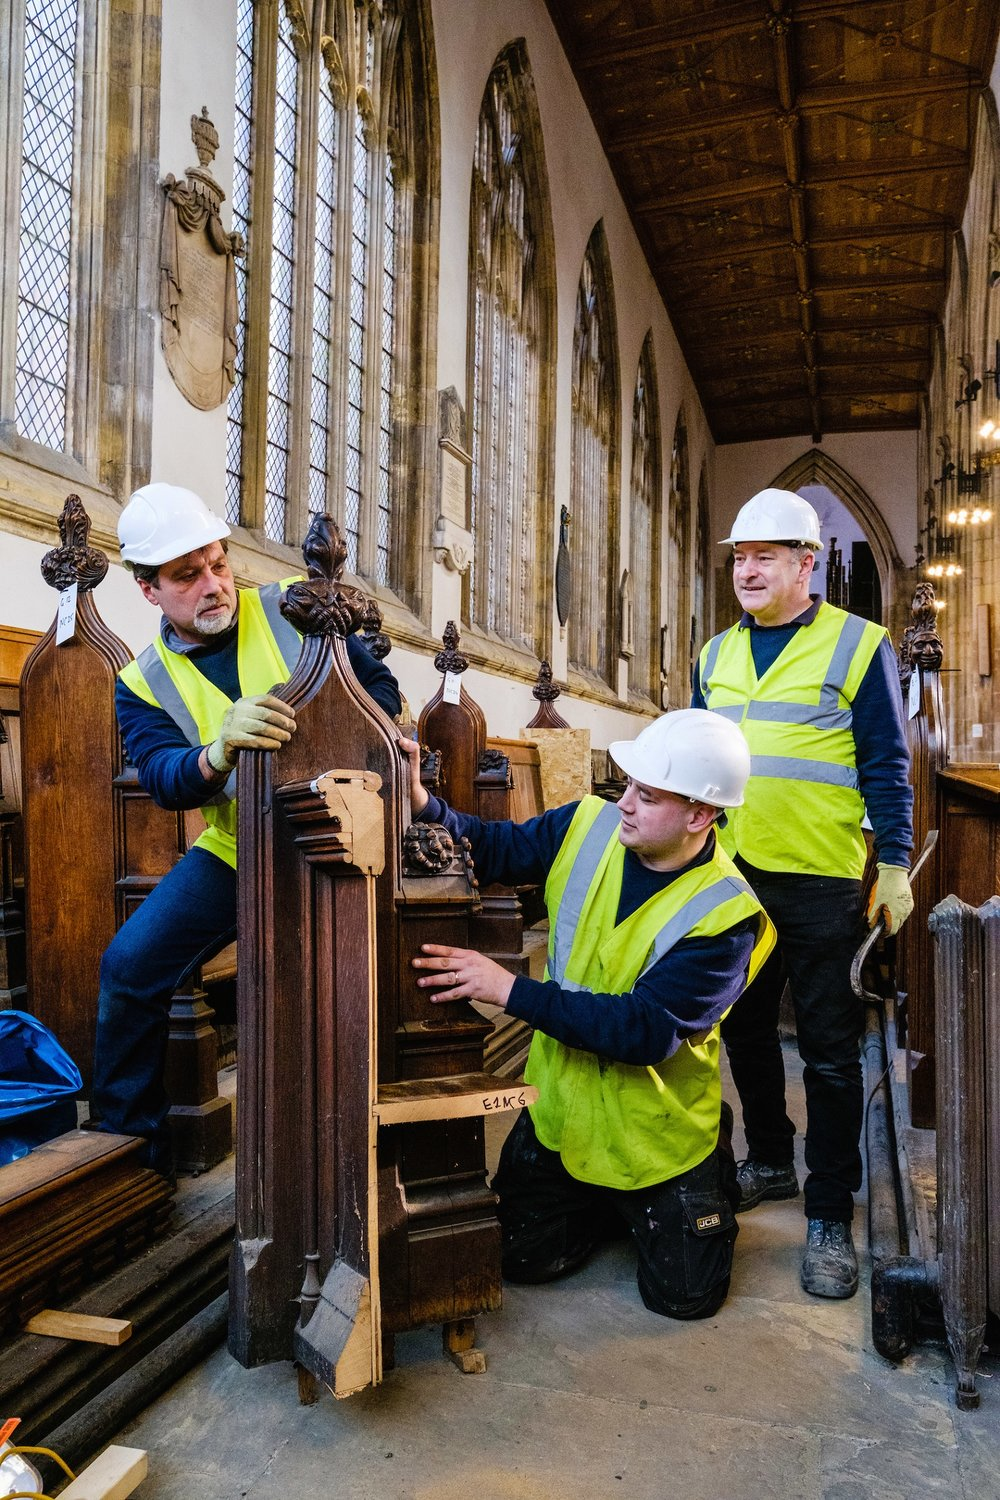 Wood carvers, from left, Ogninian Ivanov, Andy Thompson and Andrew Martindale are dismantling pews at Holy Trinity Church ready for remodelling at the workshops of bespoke architectural joiners Houghtons of York.